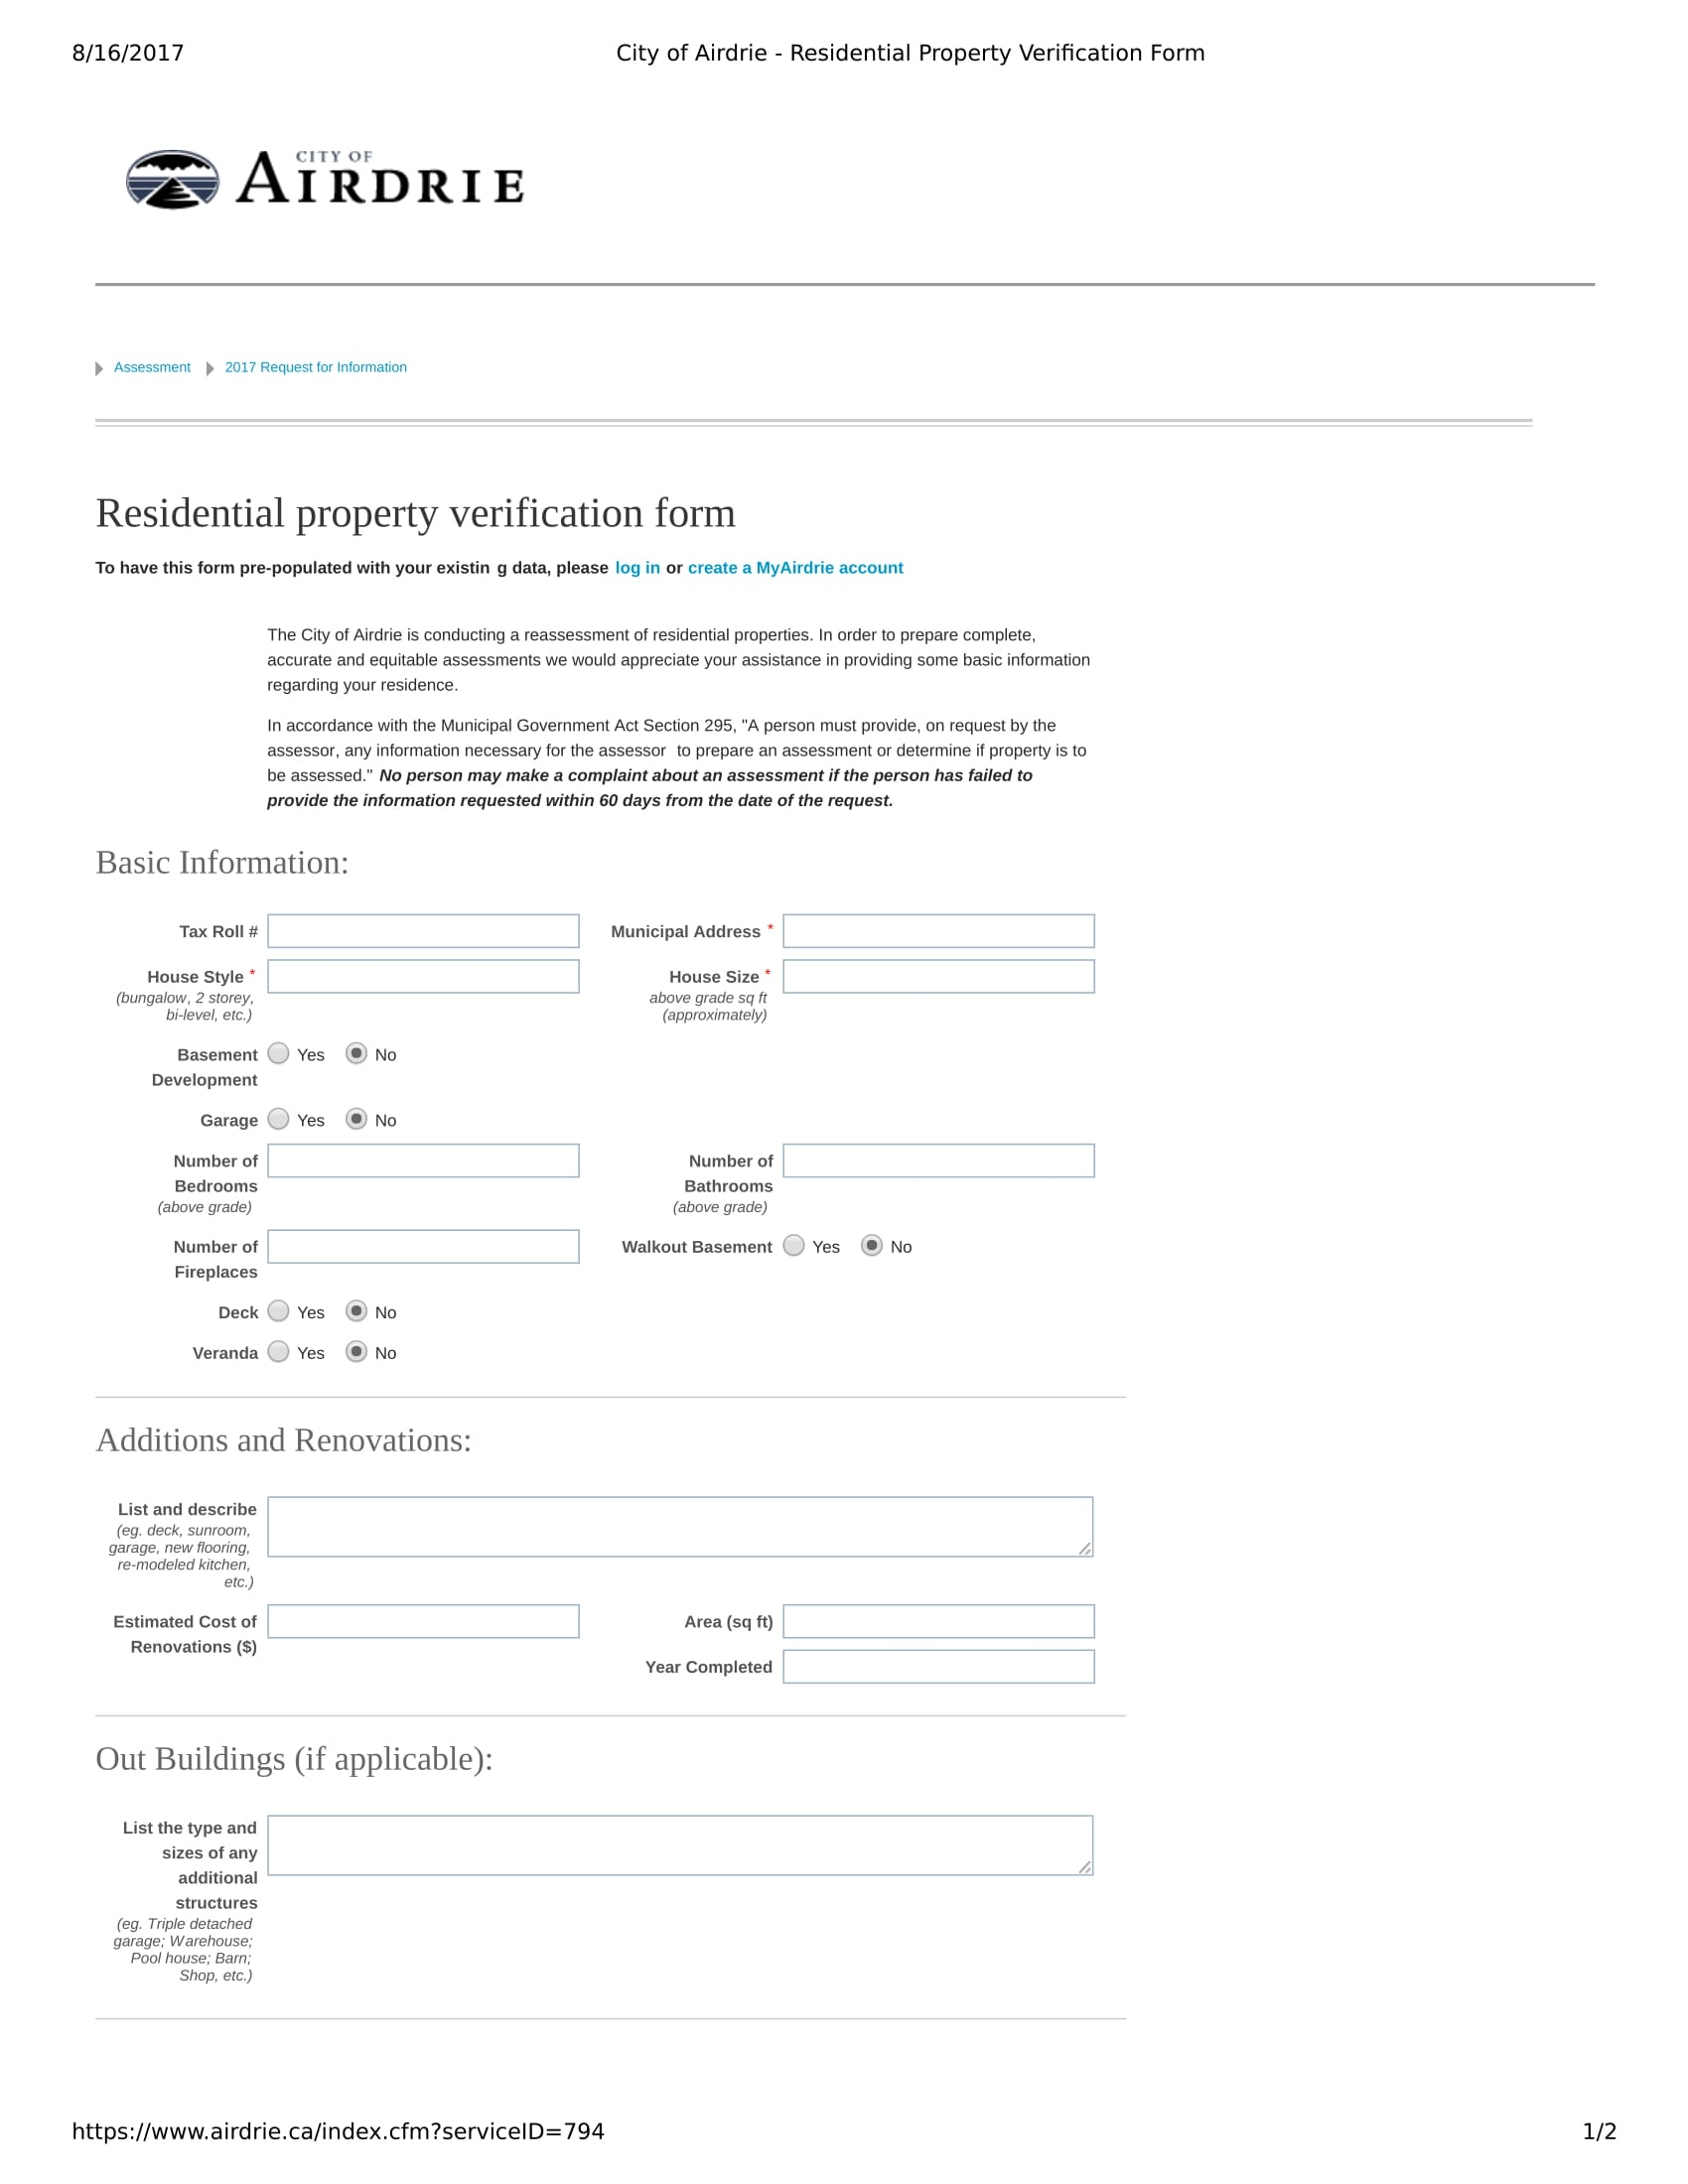 residential property verification form 1